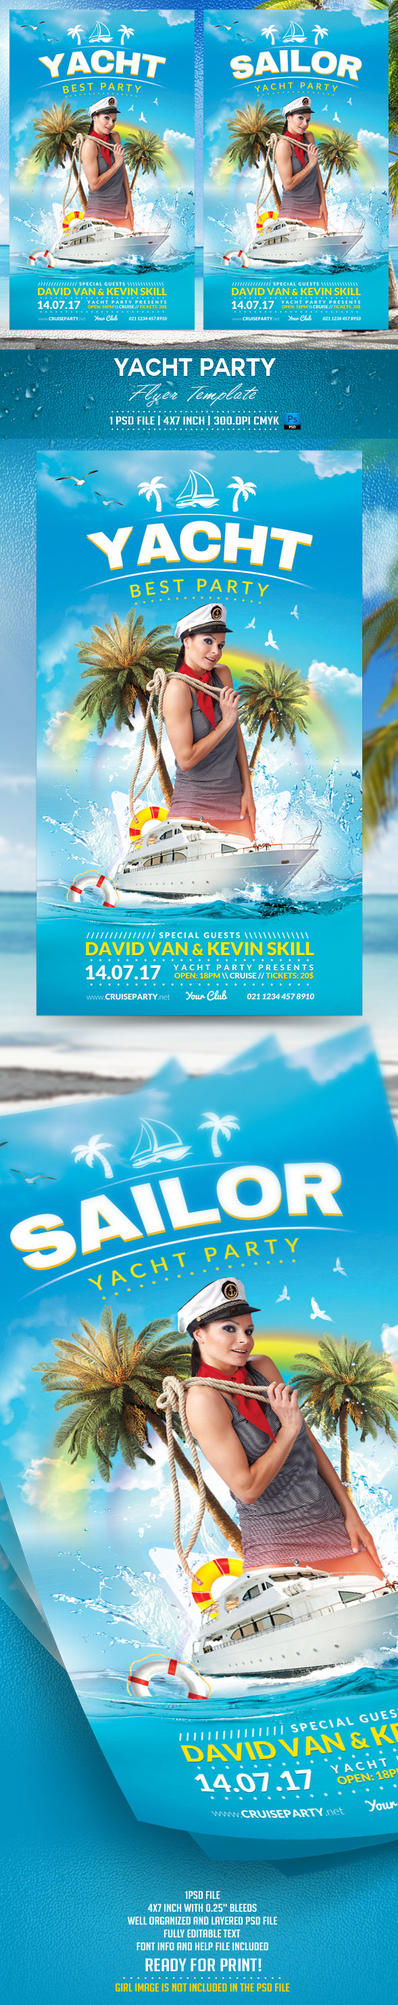 Yacht Party Flyer Template by BriellDesign